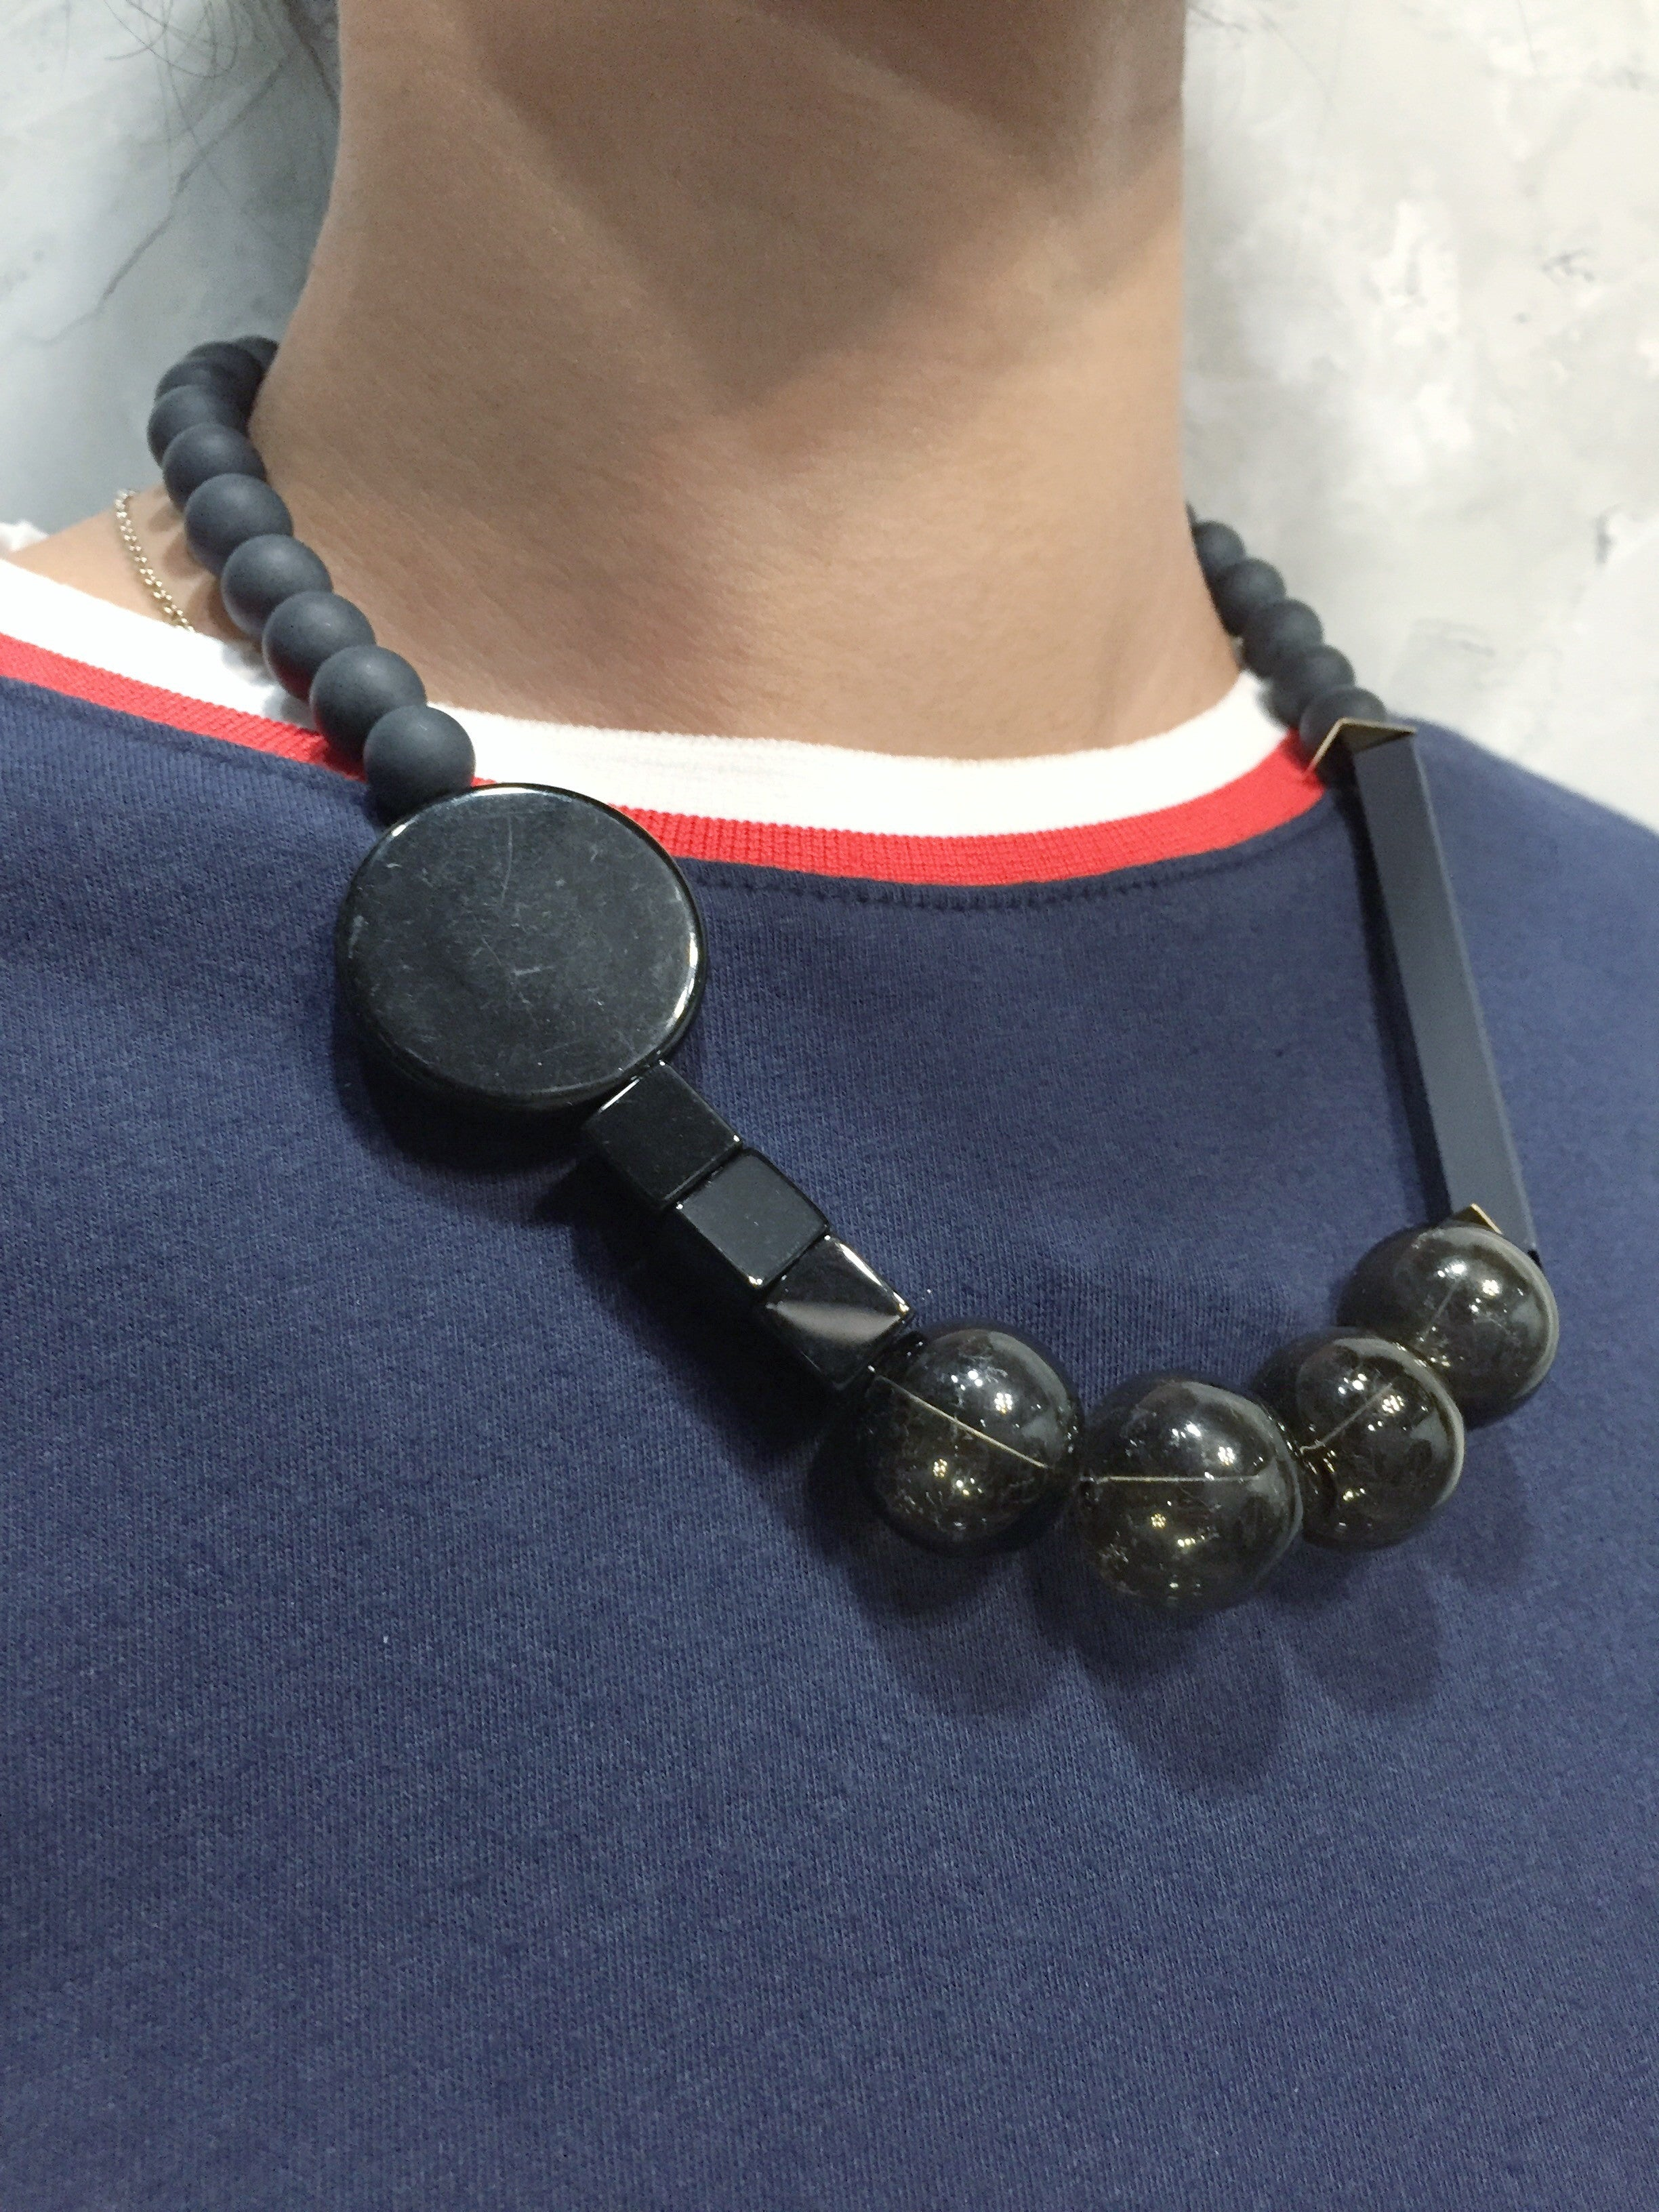 Black Matte Onyx Glass Necklace